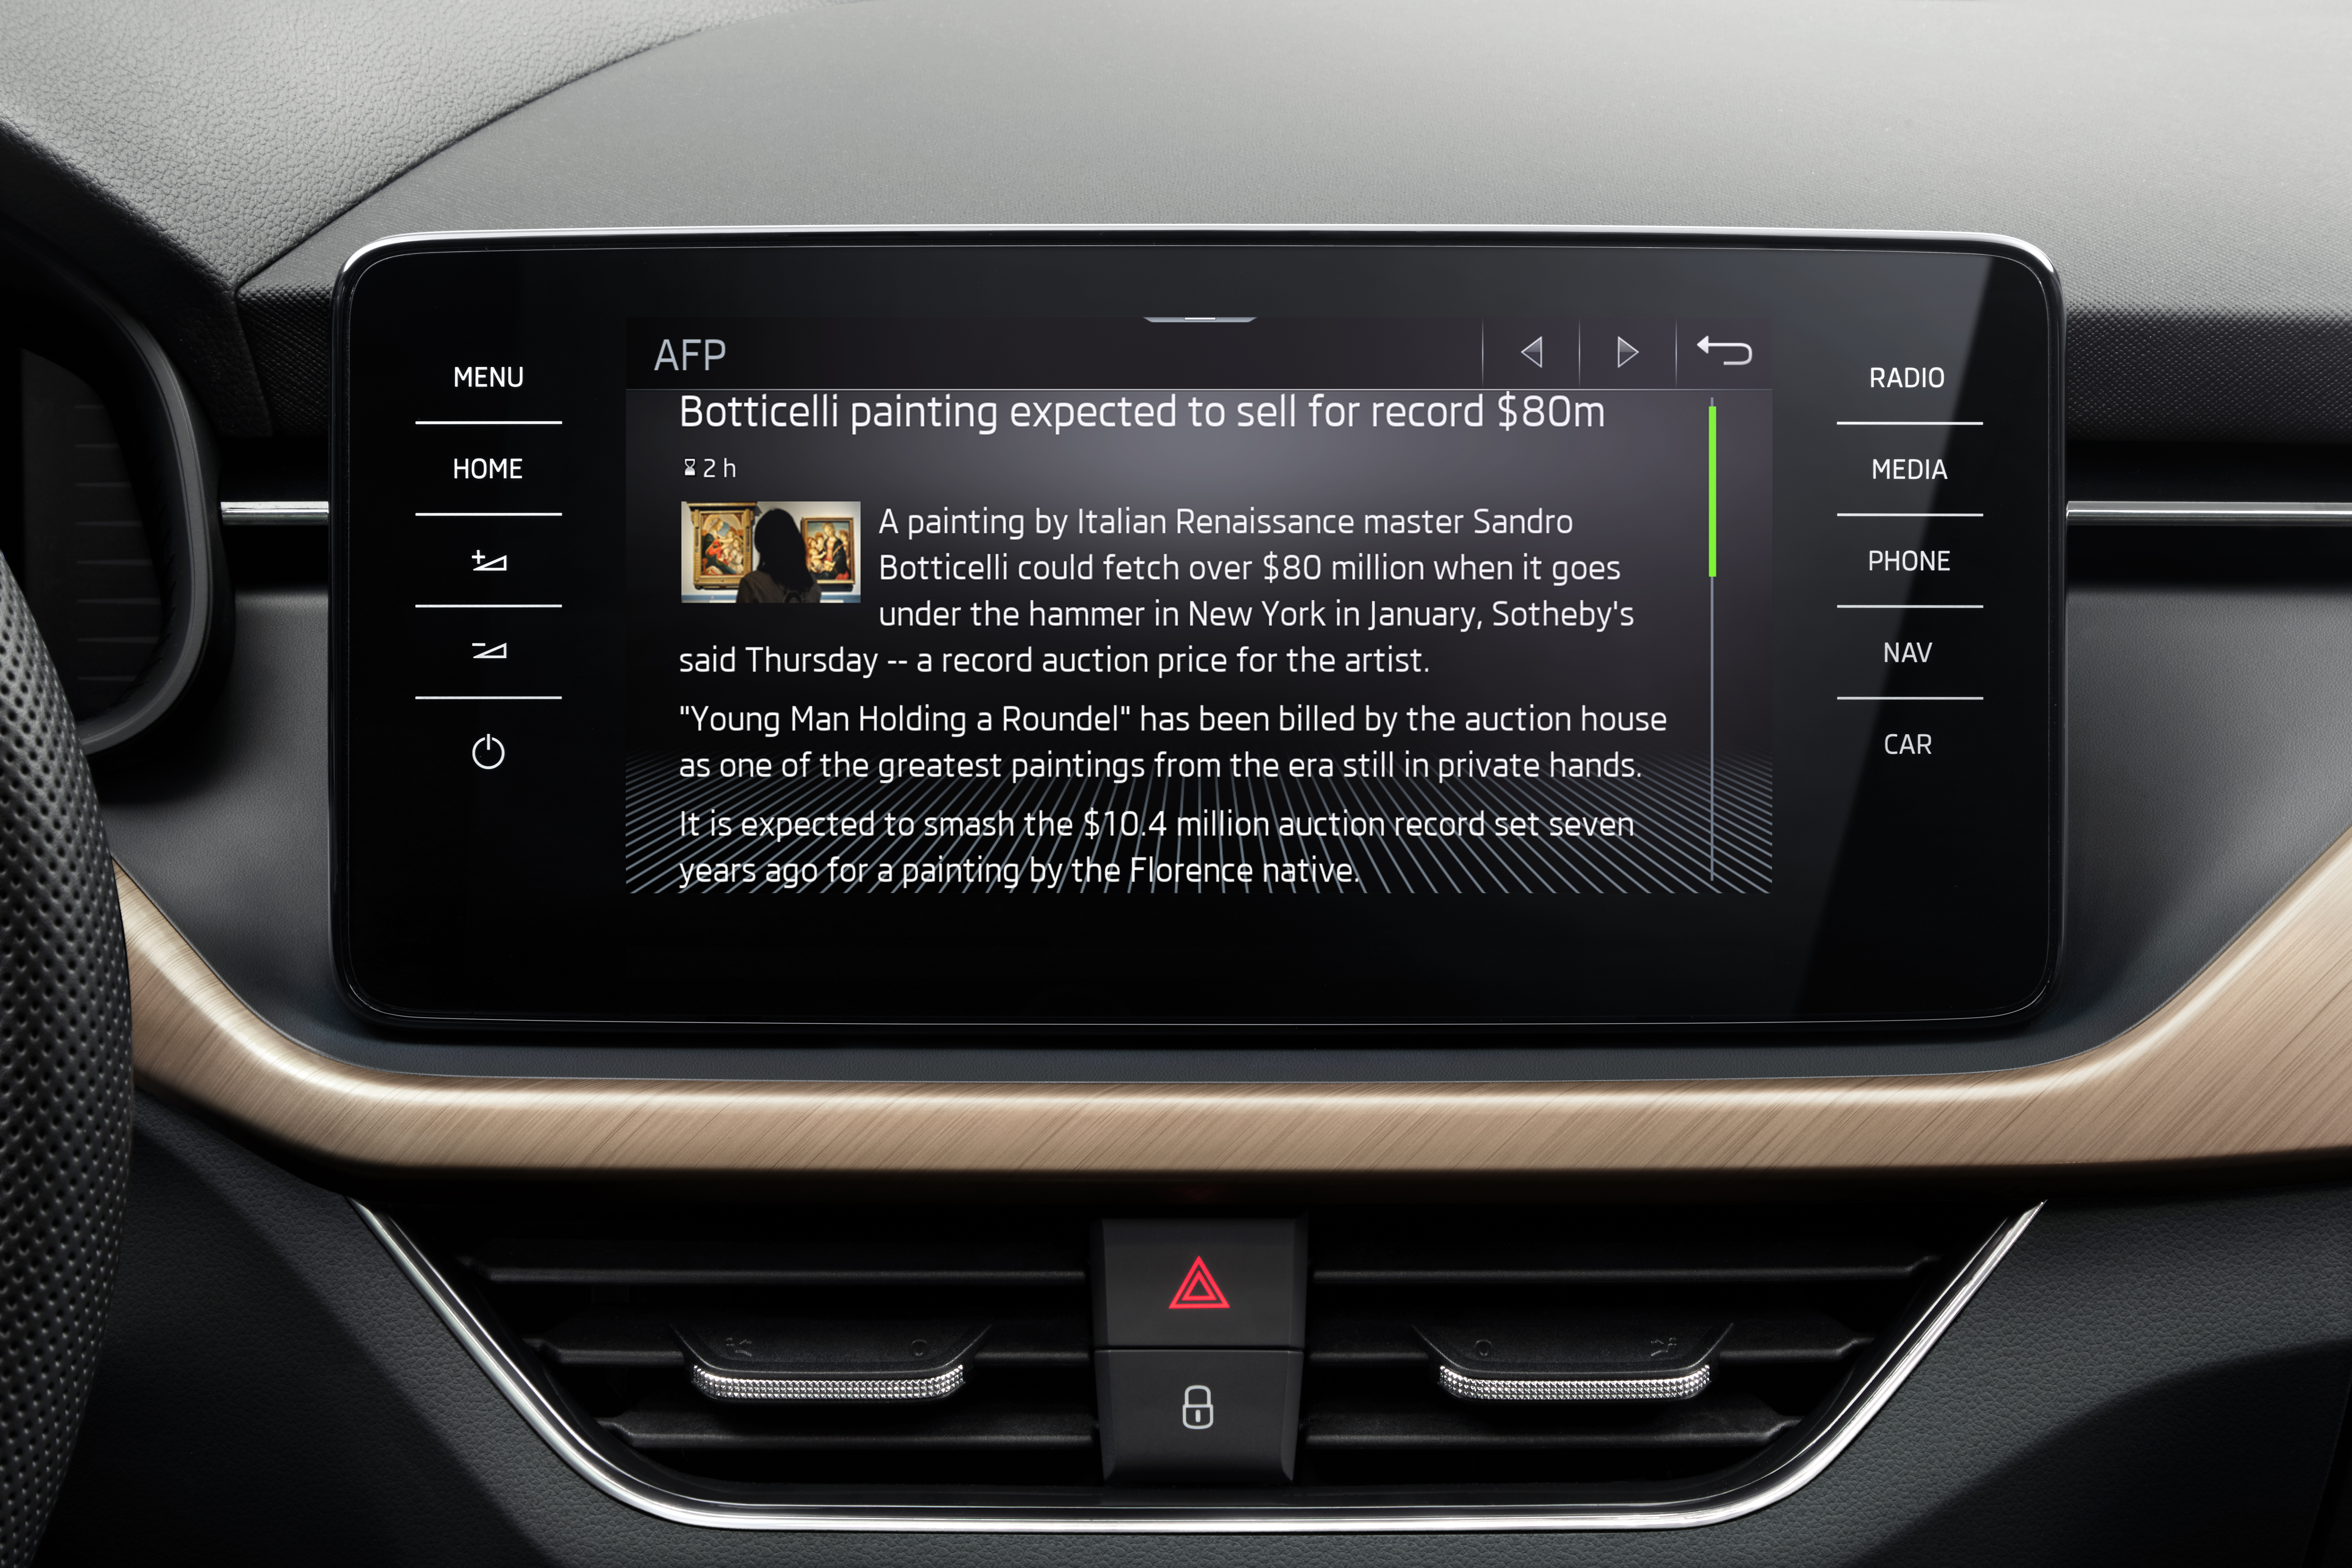 For weather and news: SKODA launches Infotainment Apps in SCALA, KAMIQ, KAROQ, KODIAQ and SUPERB - Image 1